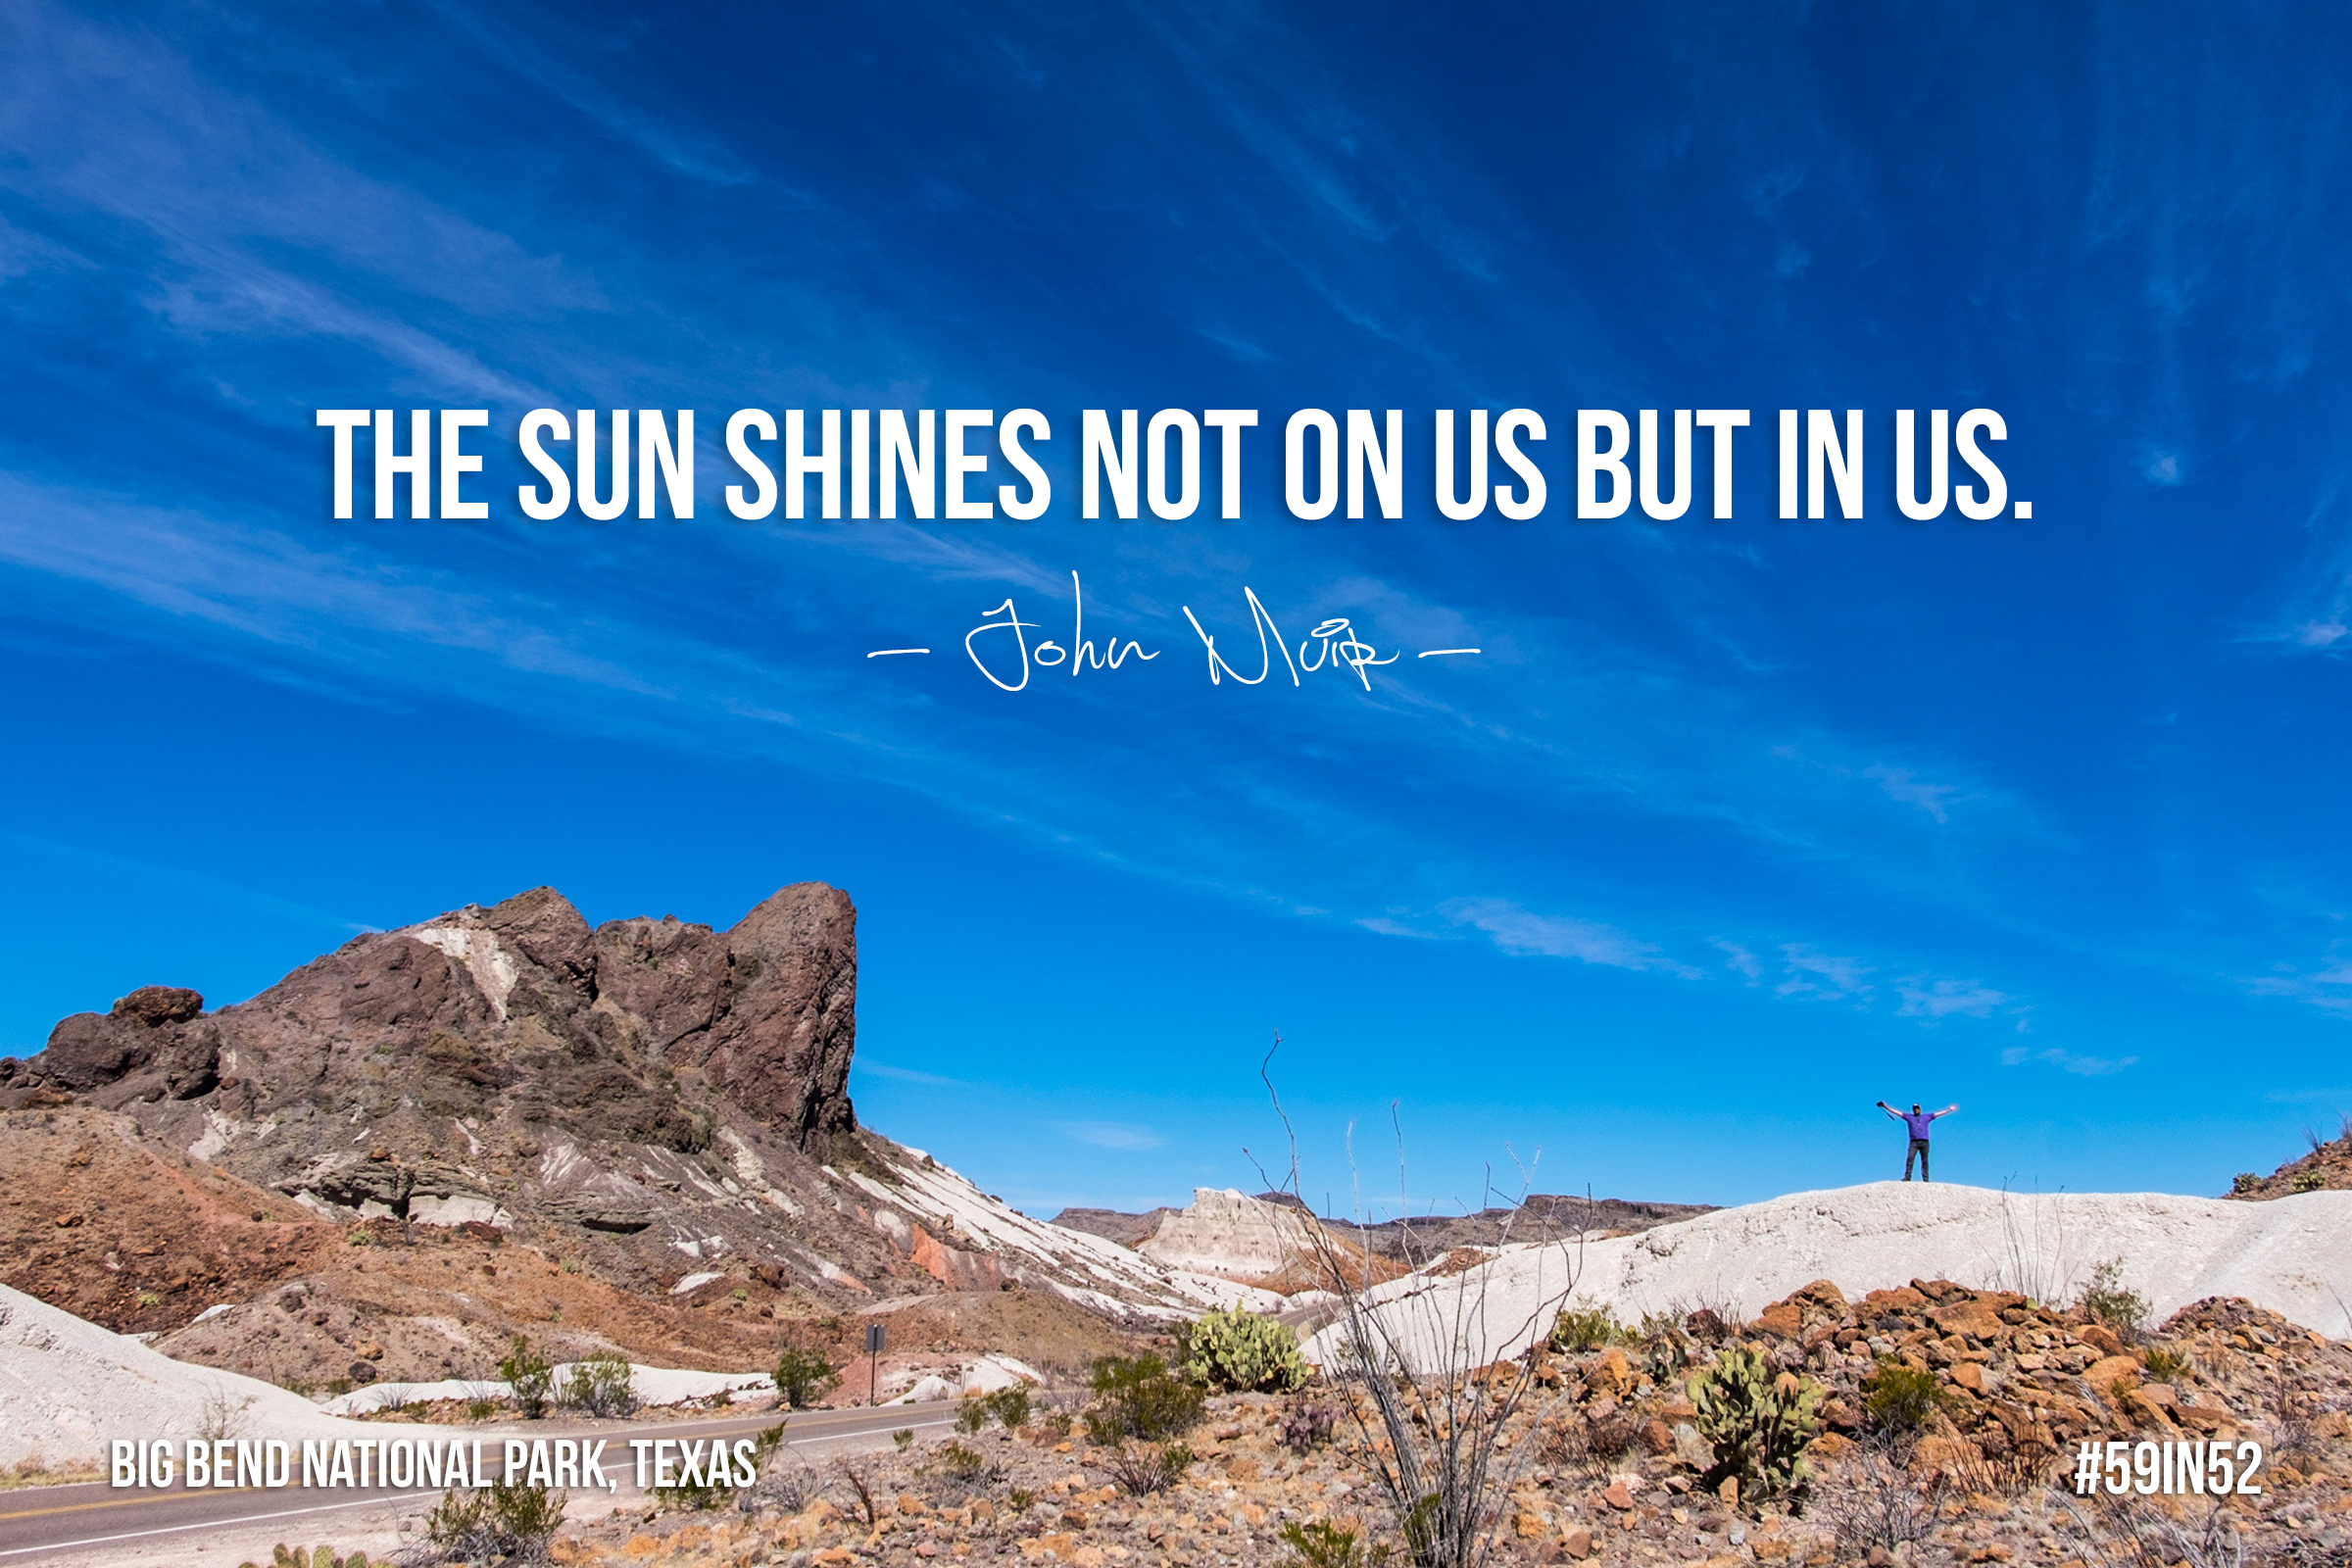 'The sun shines not on us but in us.' - John Muir | Big Bend National Park, Texas, USA | #59in52